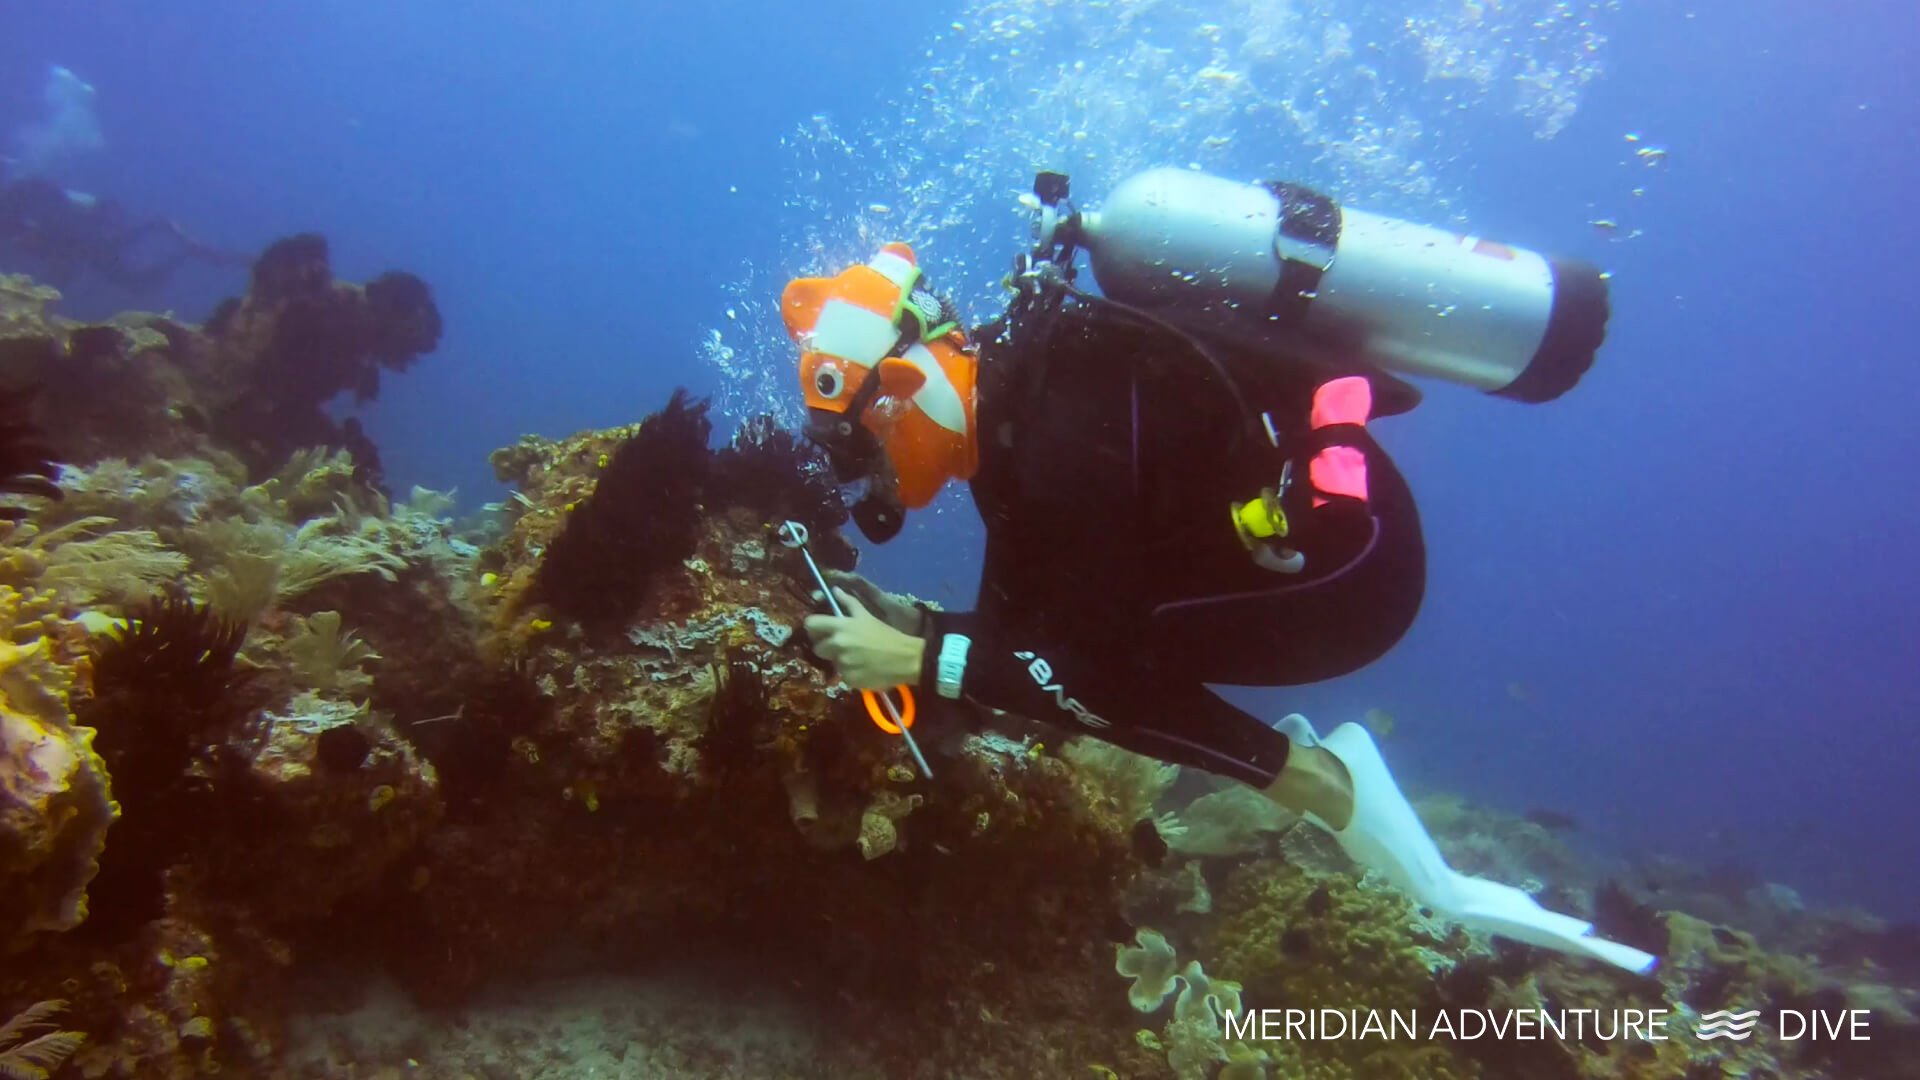 Raja Ampat diving - Doing The Worm.